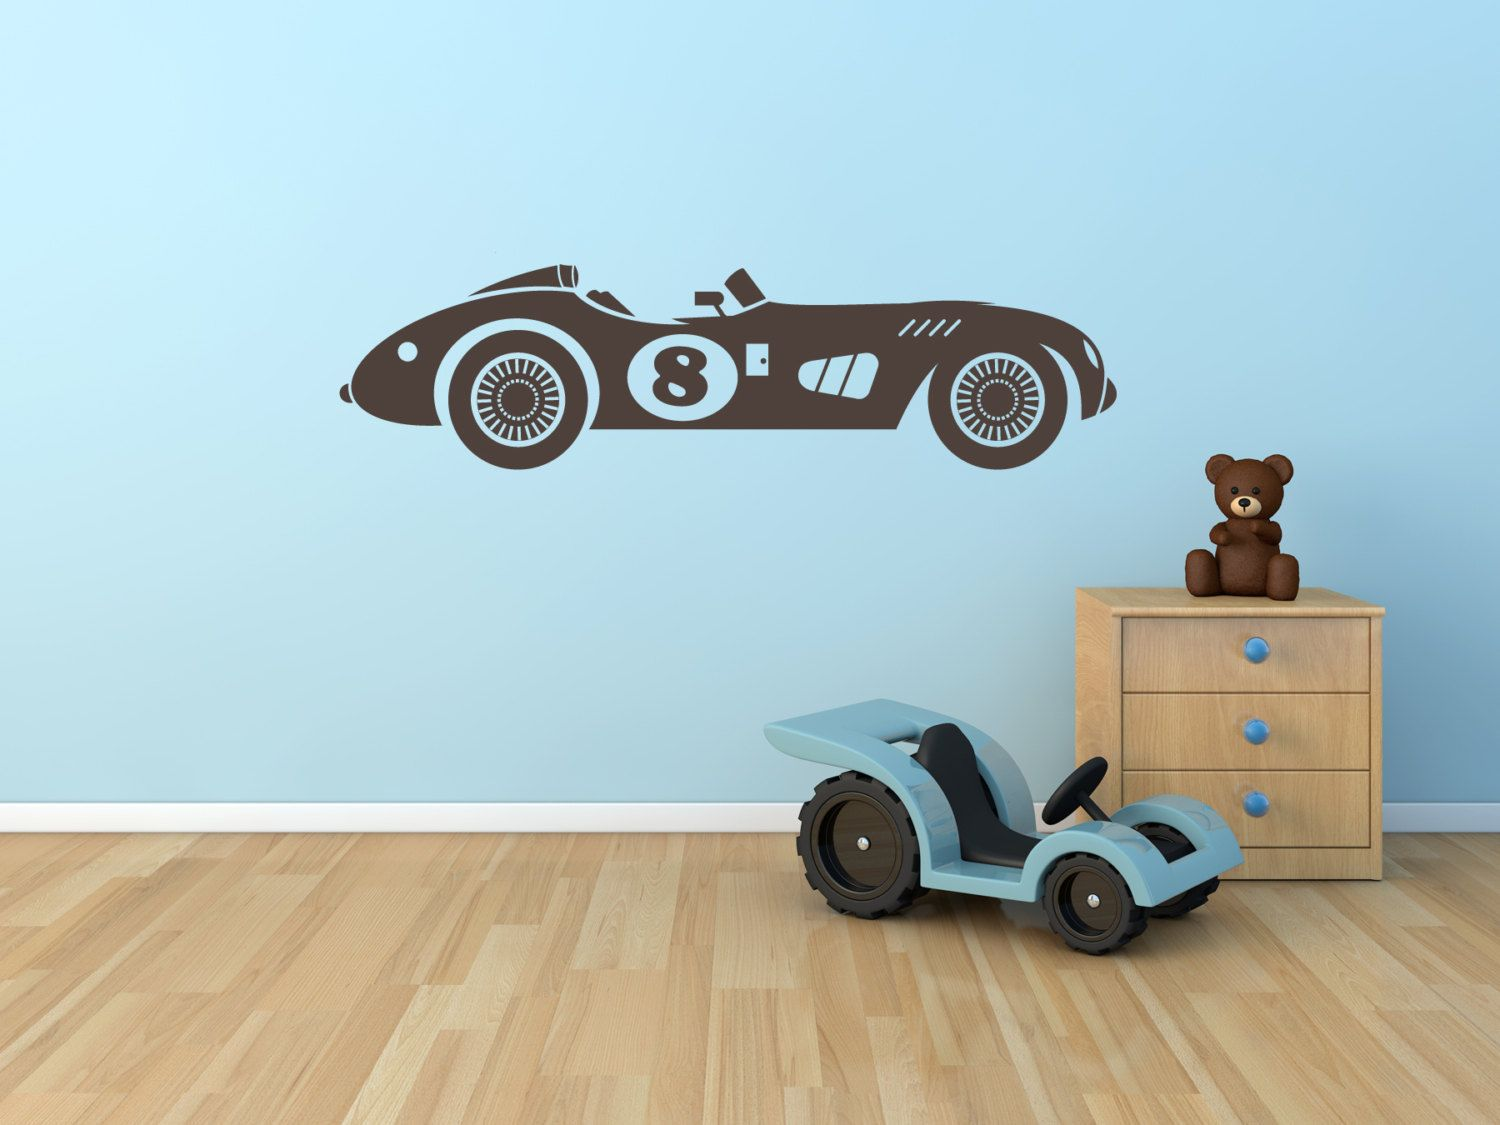 Vintage Race Car Number 8 For Boys Or Childs Room Vinyl Wall Decal Home Decor 20x7 18 99 Via Etsy